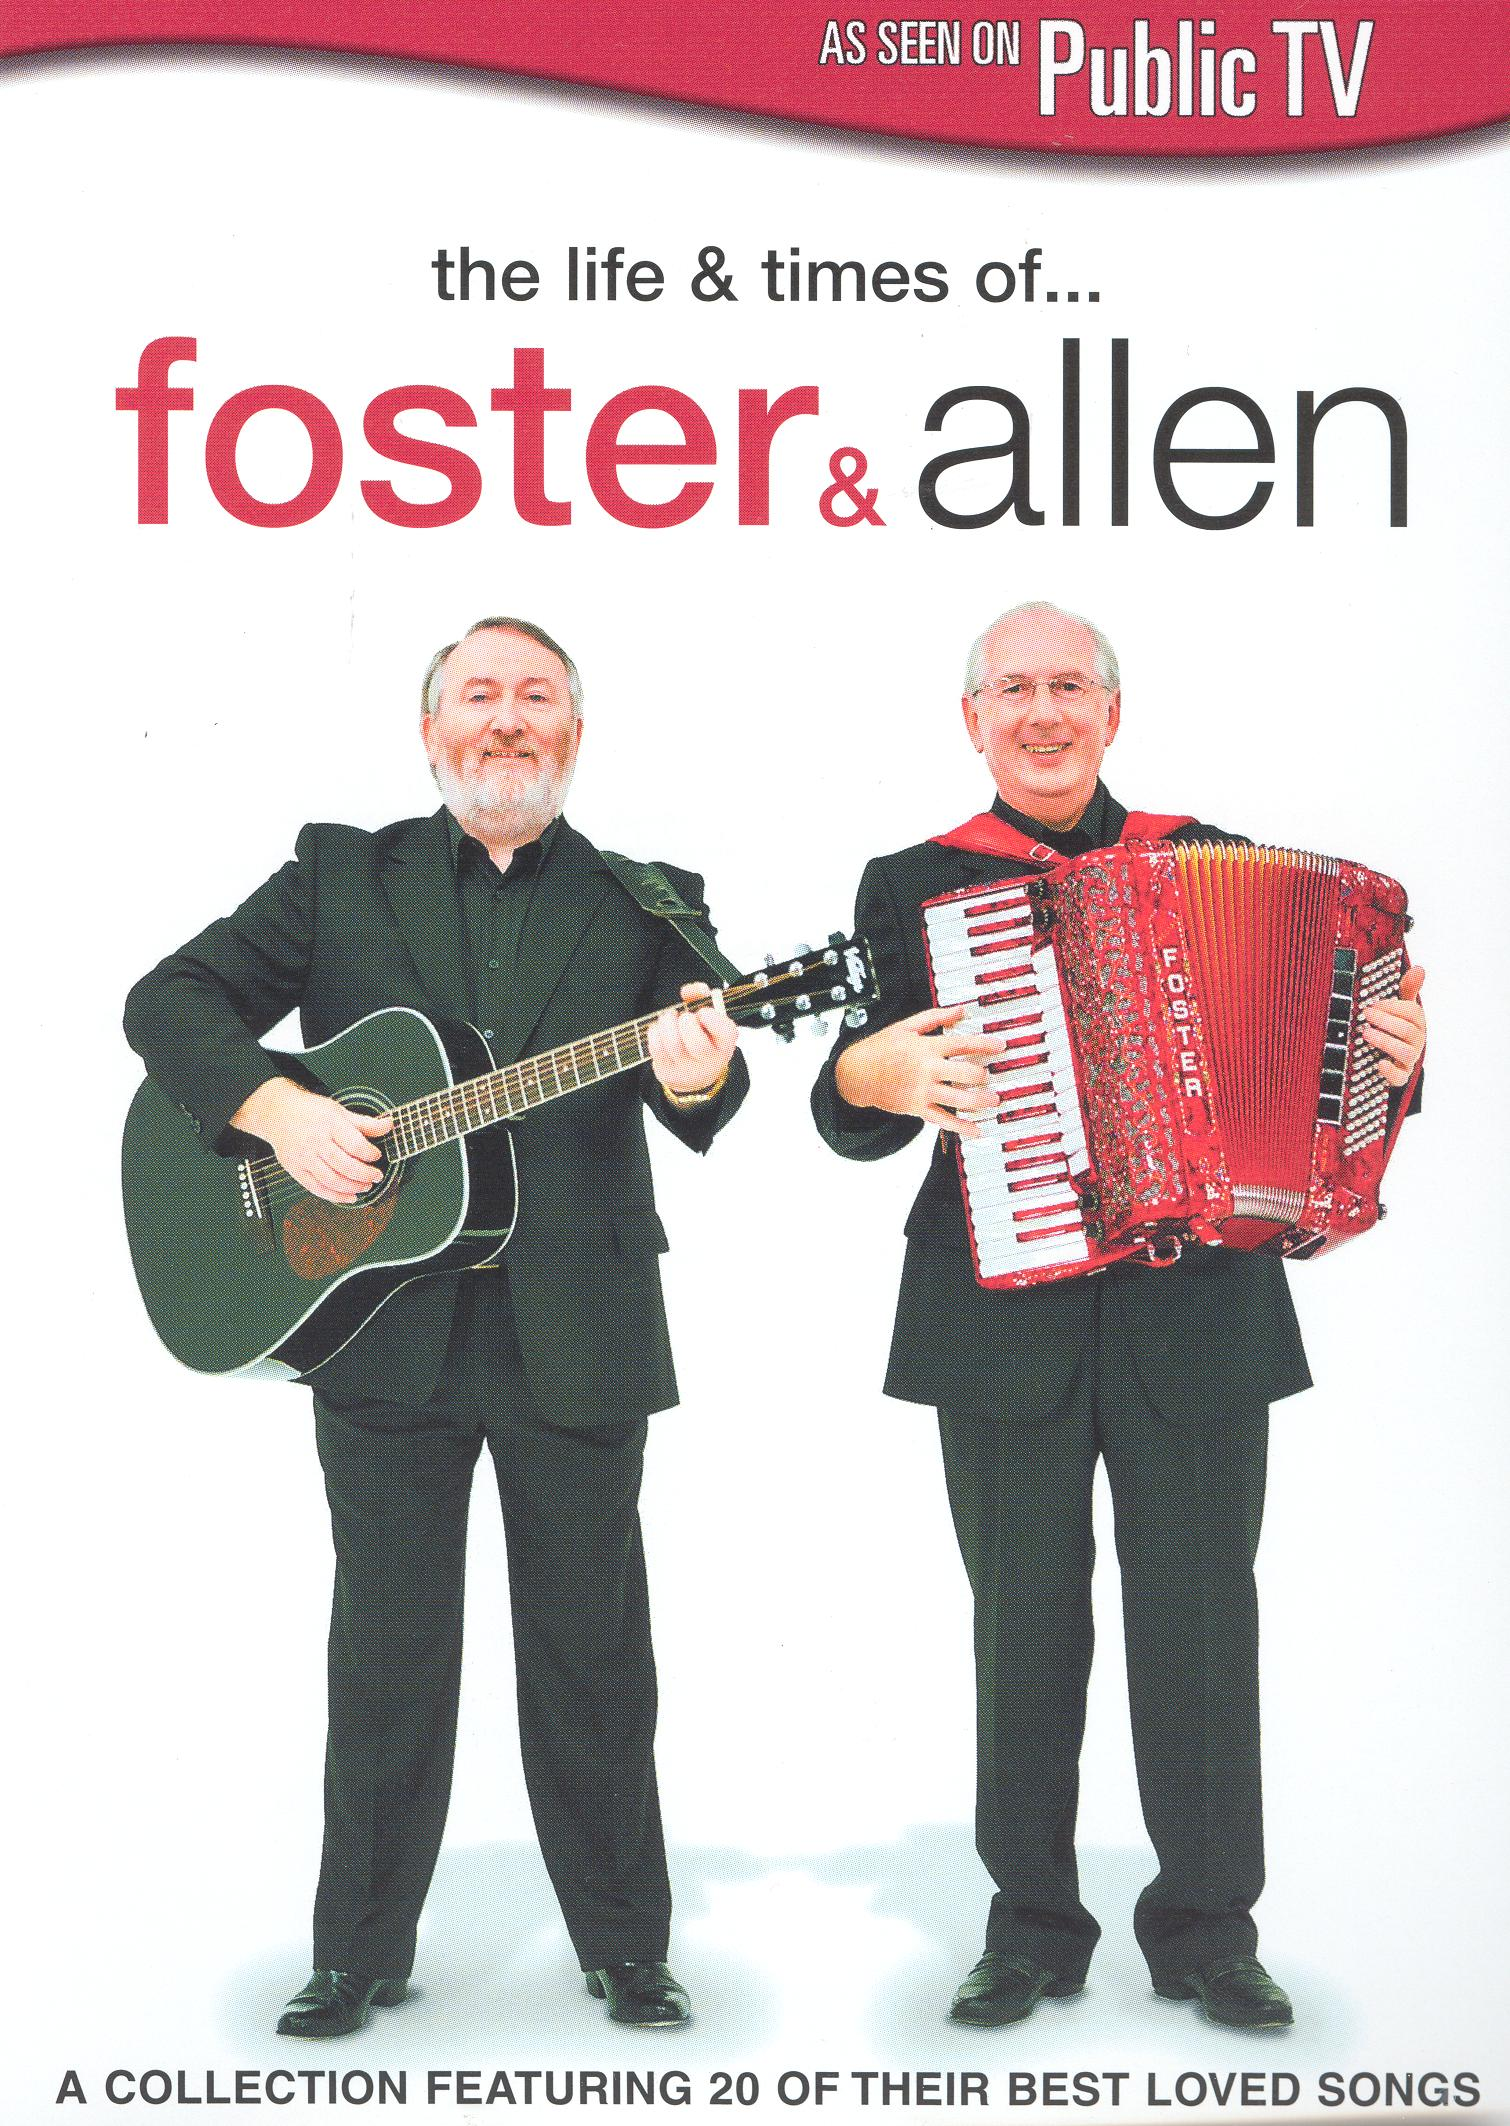 Life & Times of... Foster & Allen